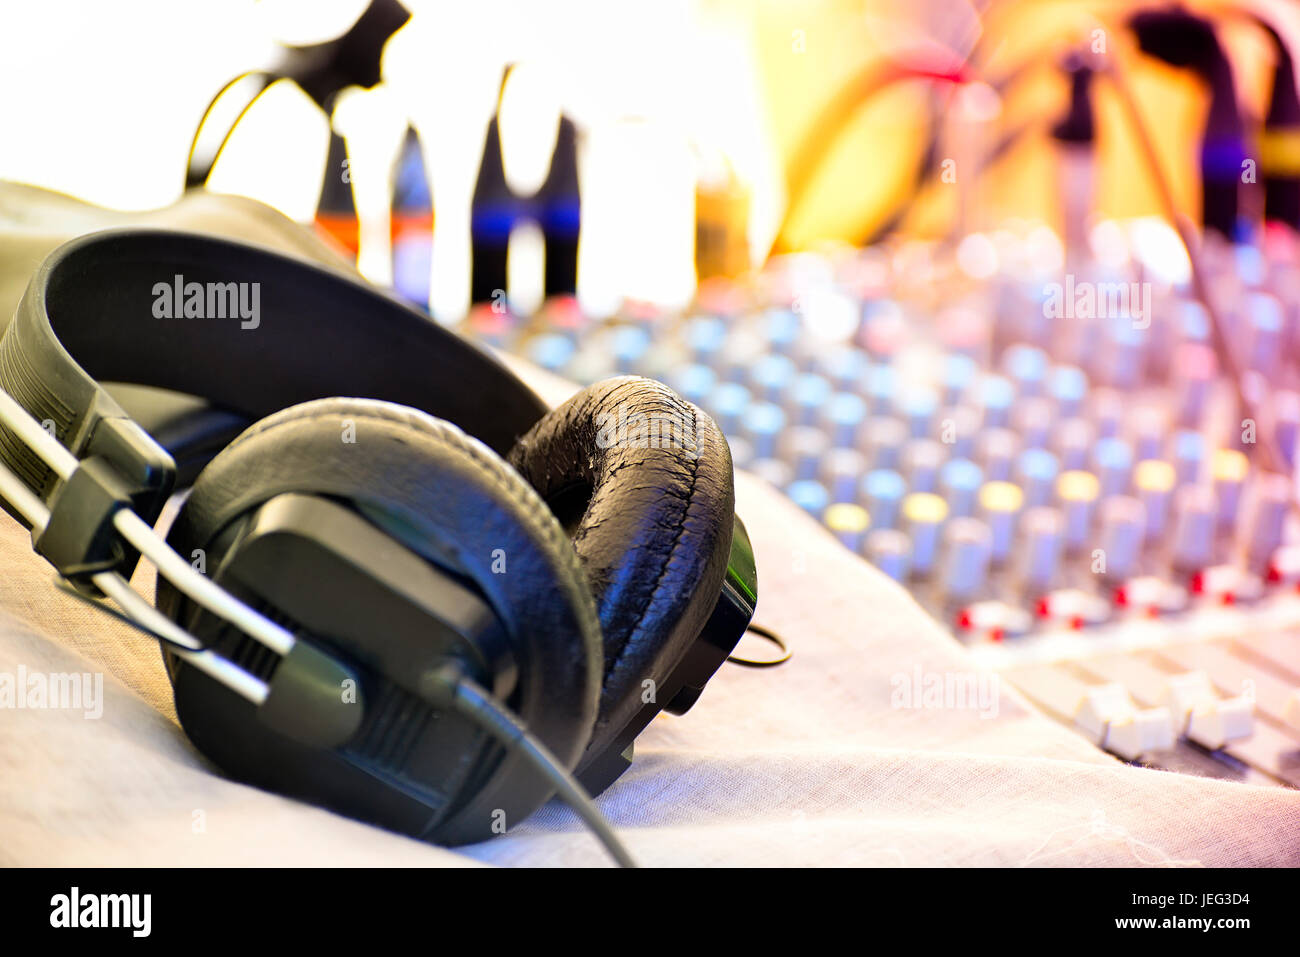 Headphones with shallow depth of field - Stock Image